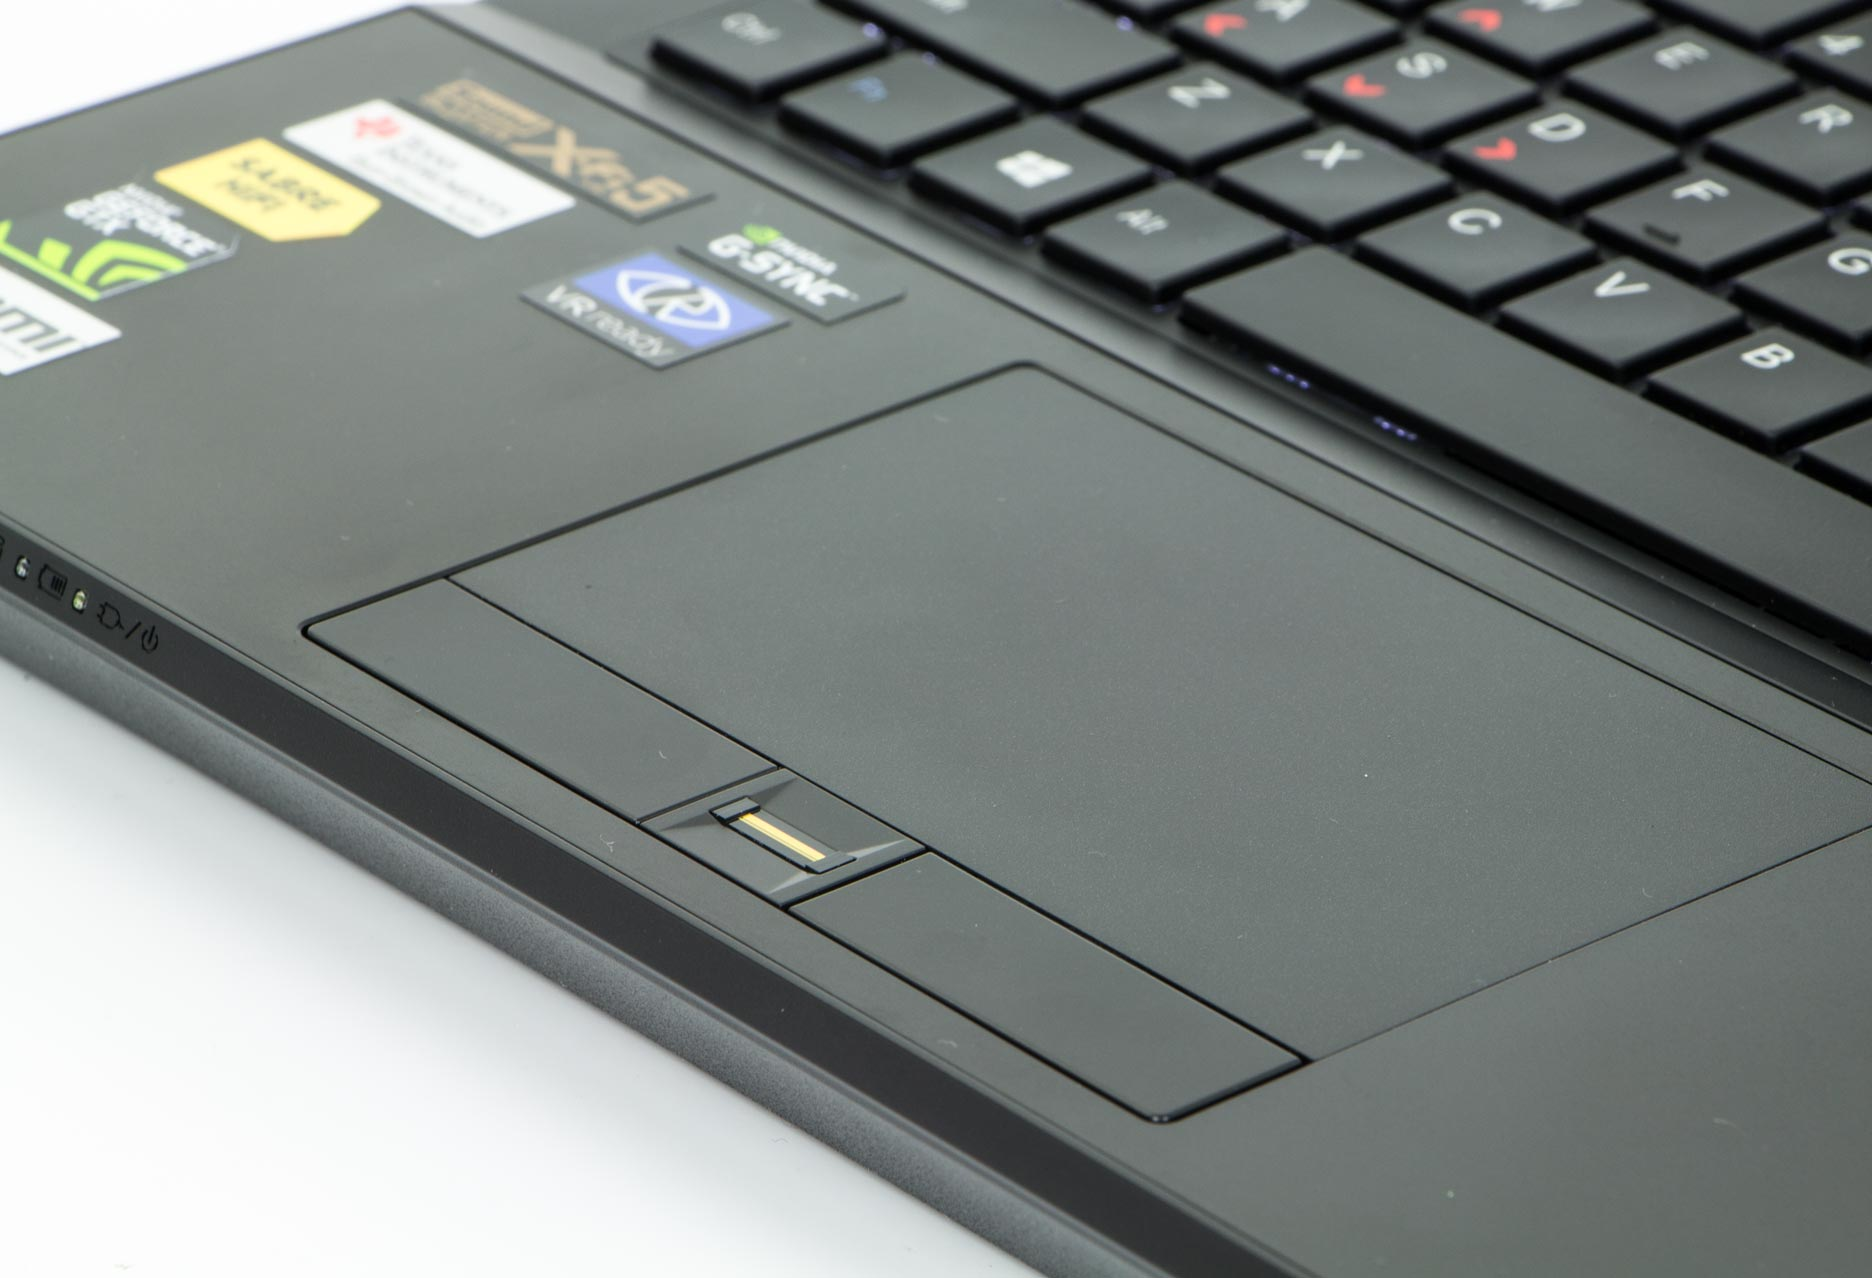 Dream Machines G1070-15PL12 touchpad